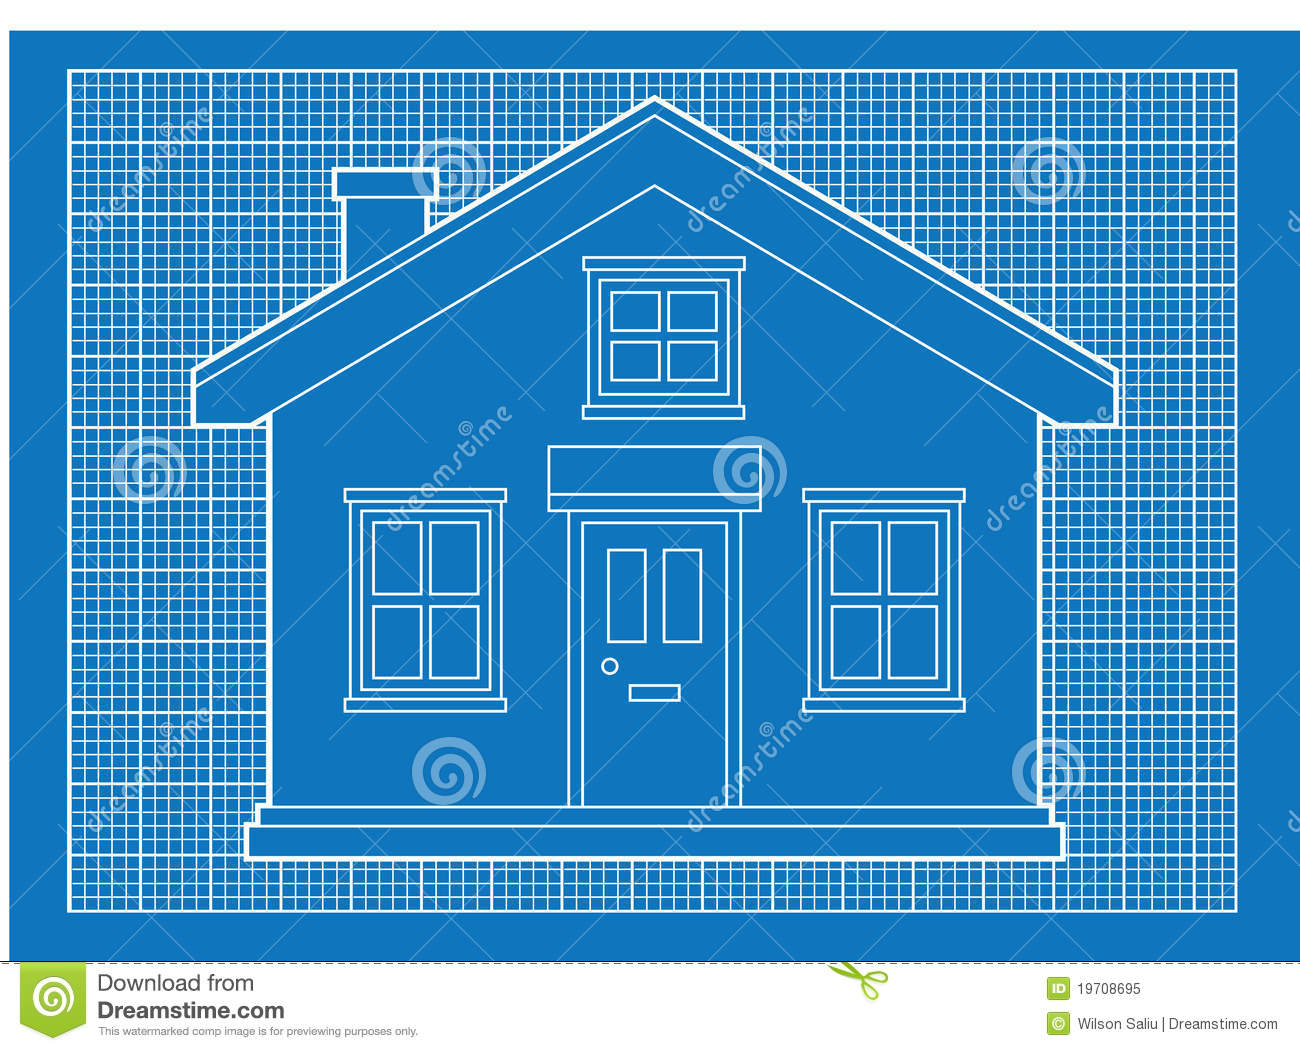 Simple house blueprints royalty free stock photo image for Blueprint for houses free